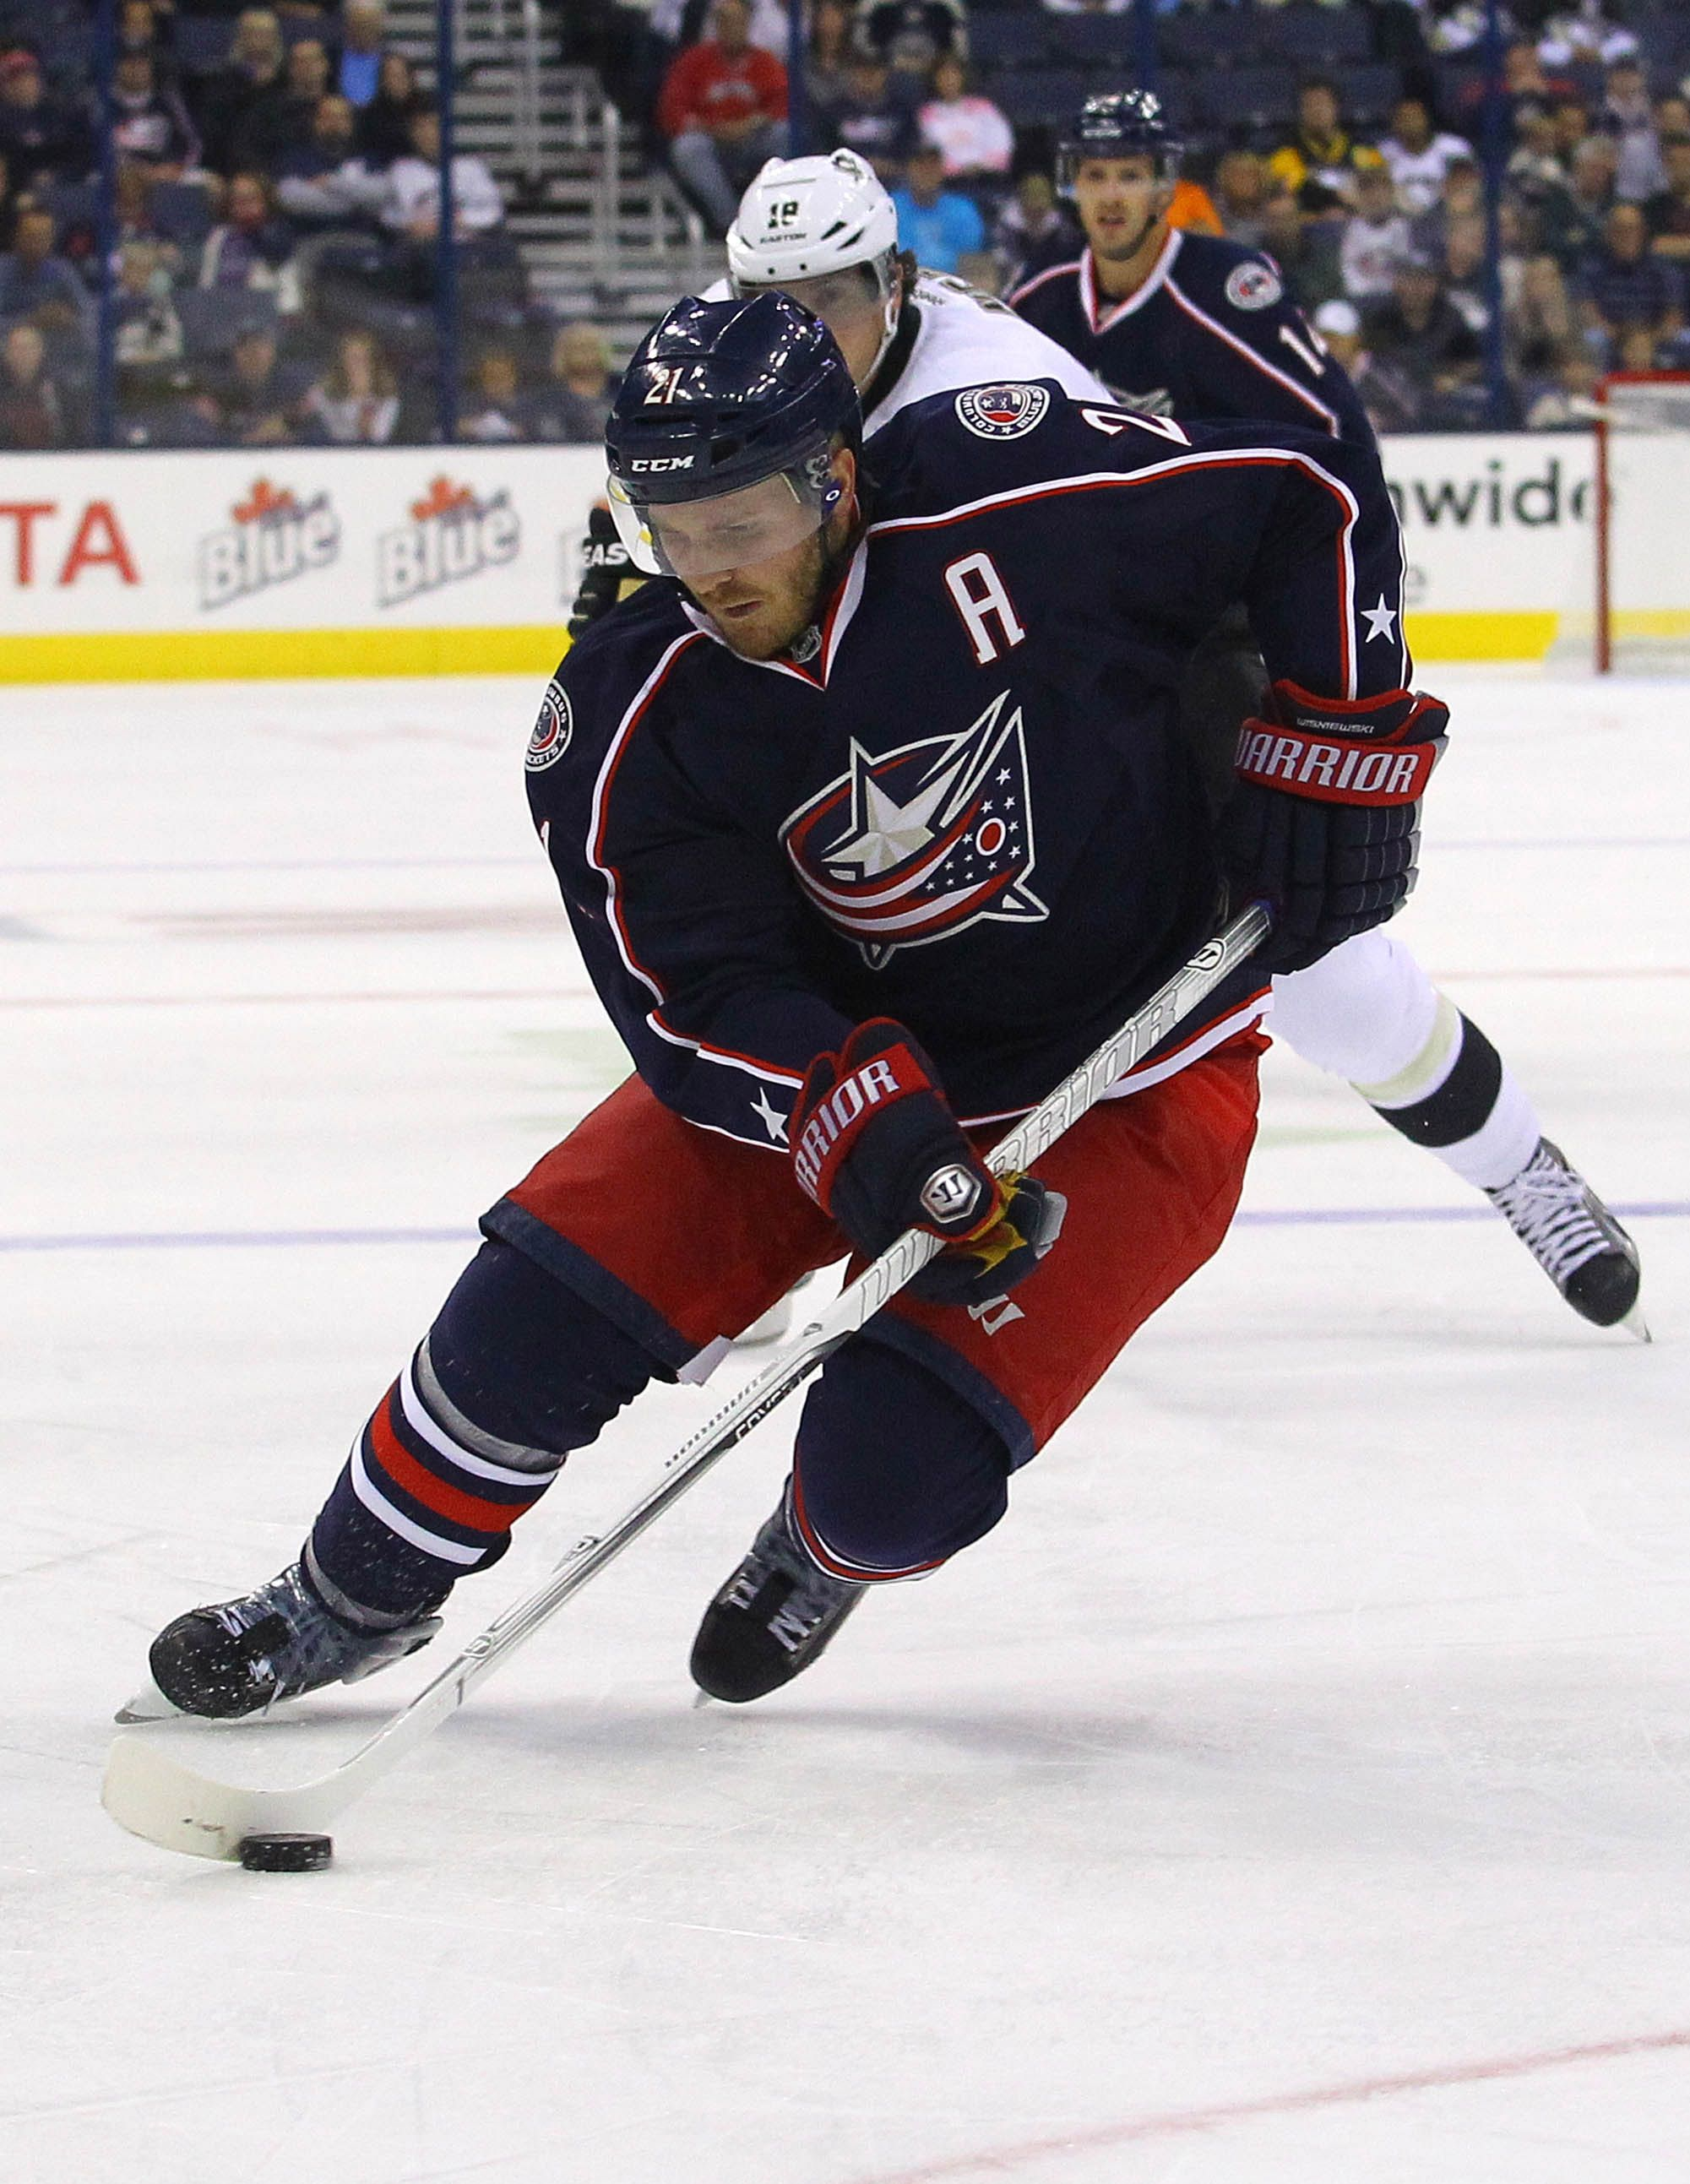 CrowdCam Hot Shot: Columbus Blue Jackets defenseman James Wisniewski skates with the puck during the 1st period of the game against the Pittsburgh Penguins at Nationwide Arena. Photo by Rob Leifheit